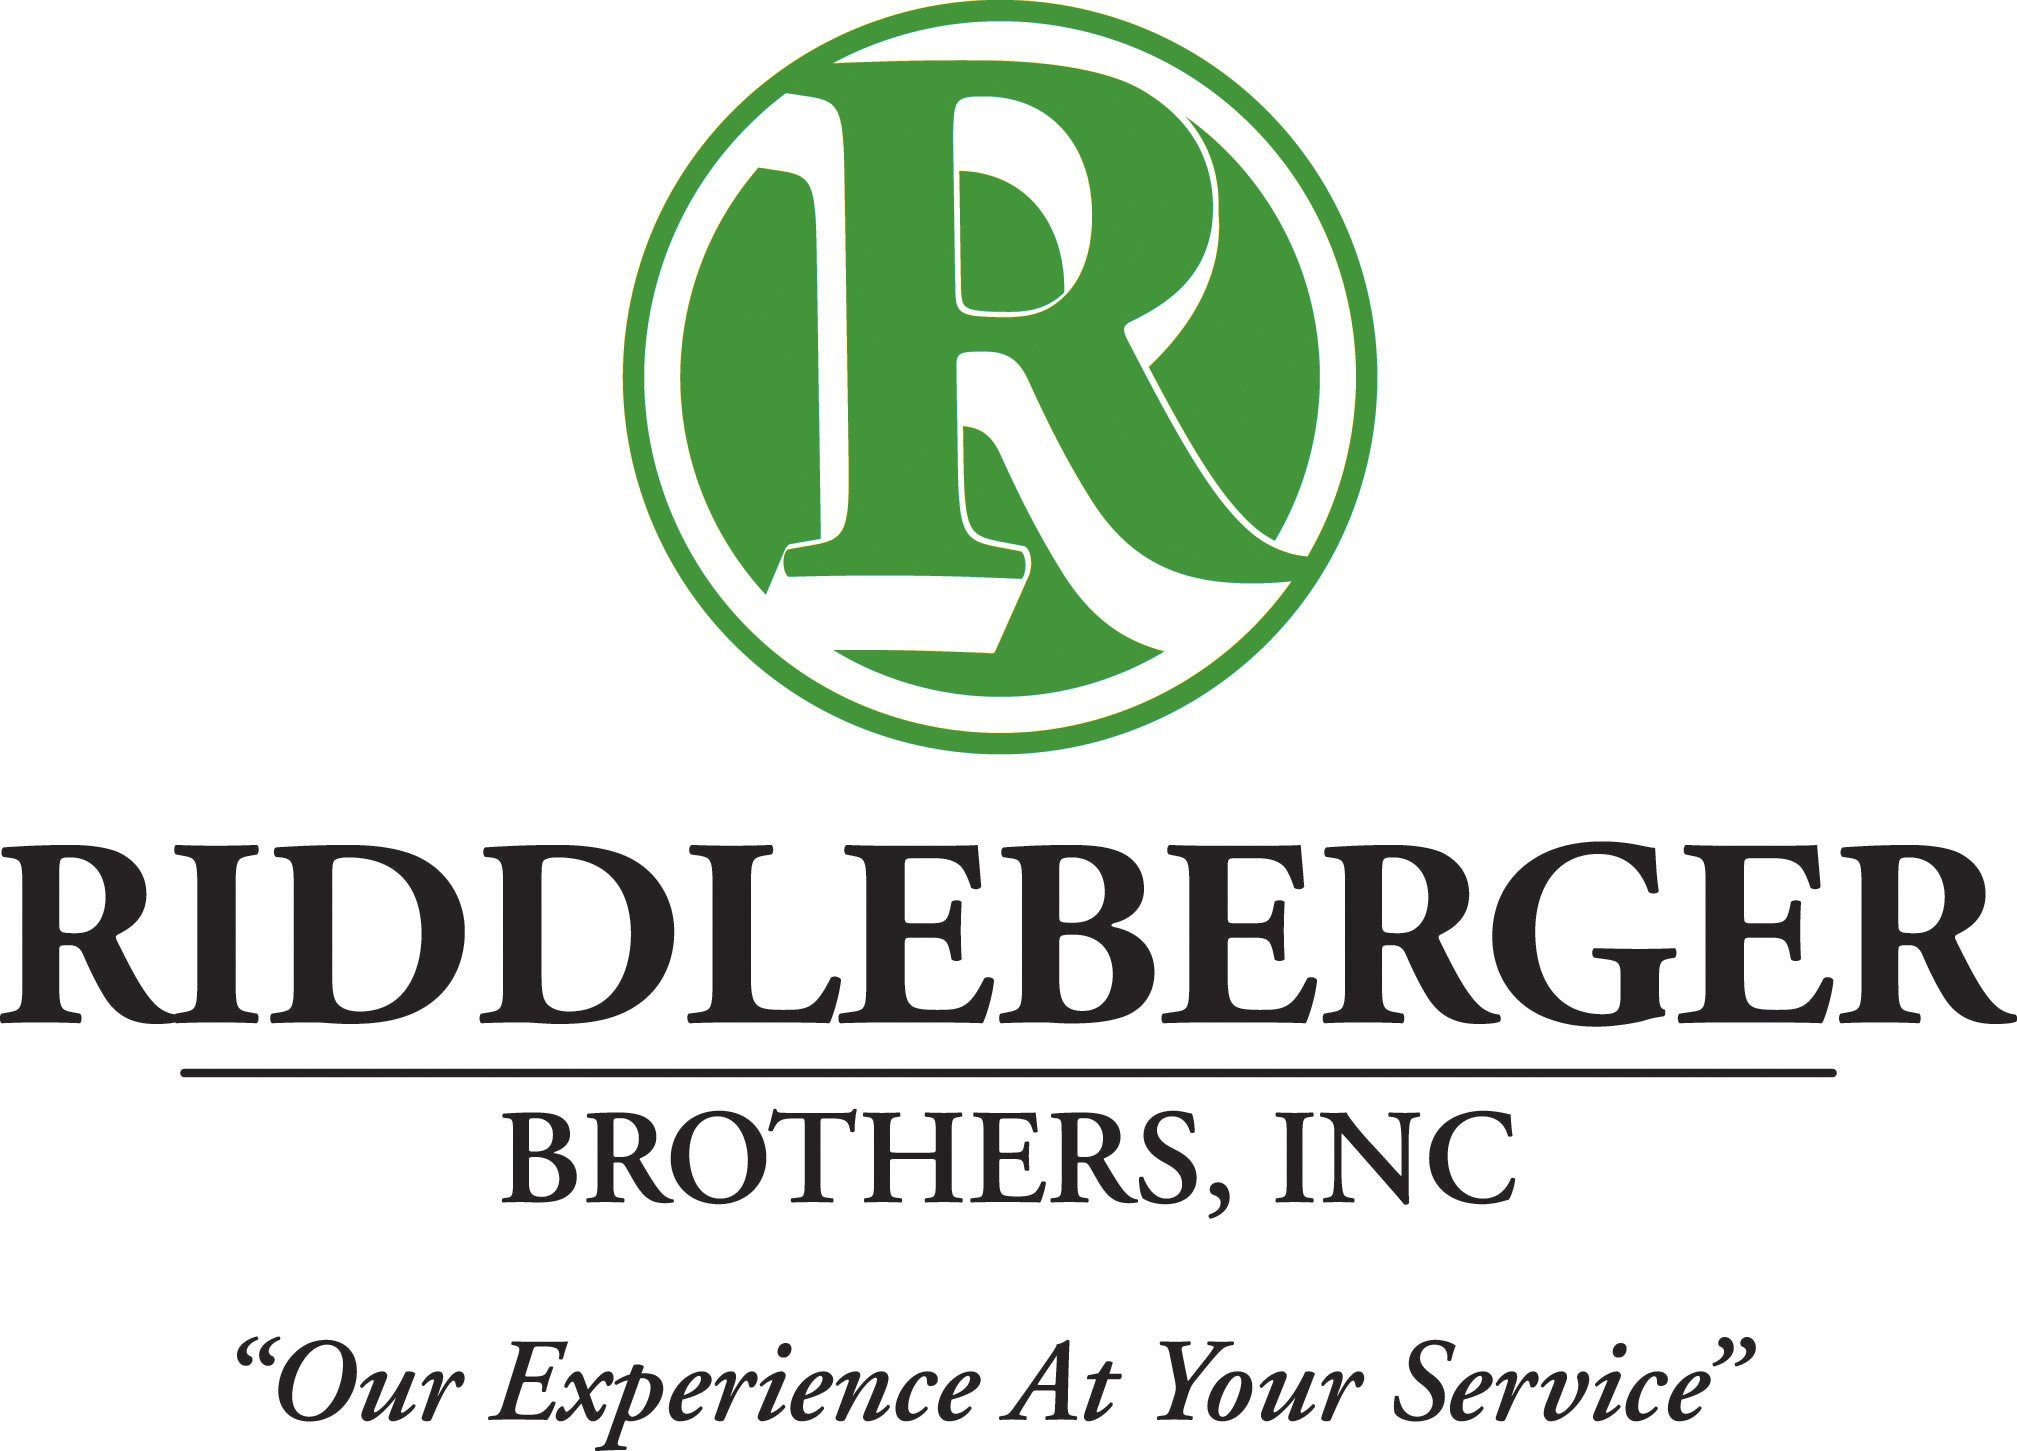 Riddleberger Brothers Inc